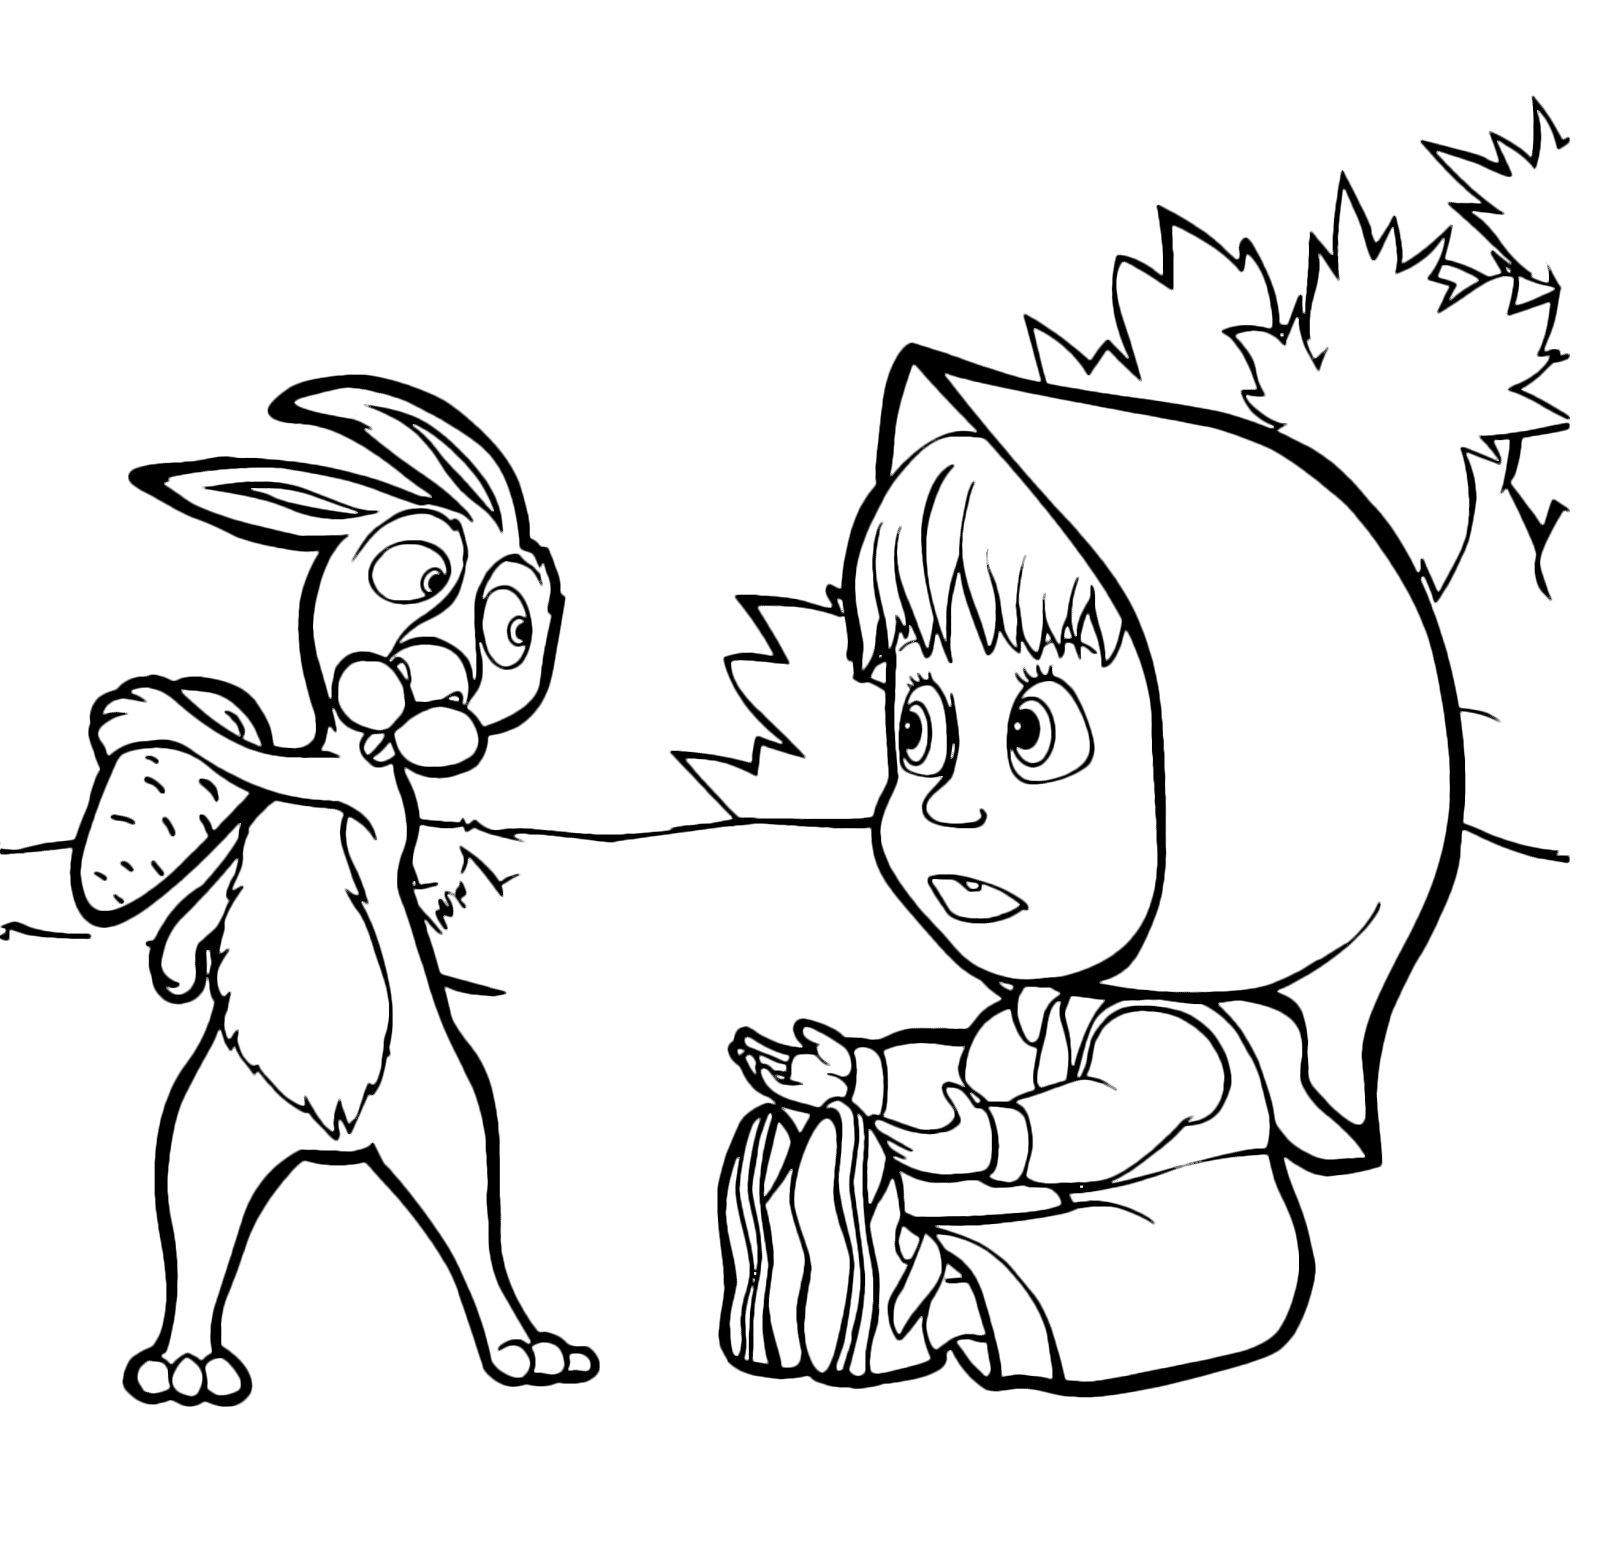 - Masha And The Bear - Rabbit Does Not Want To Give Masha Carrot